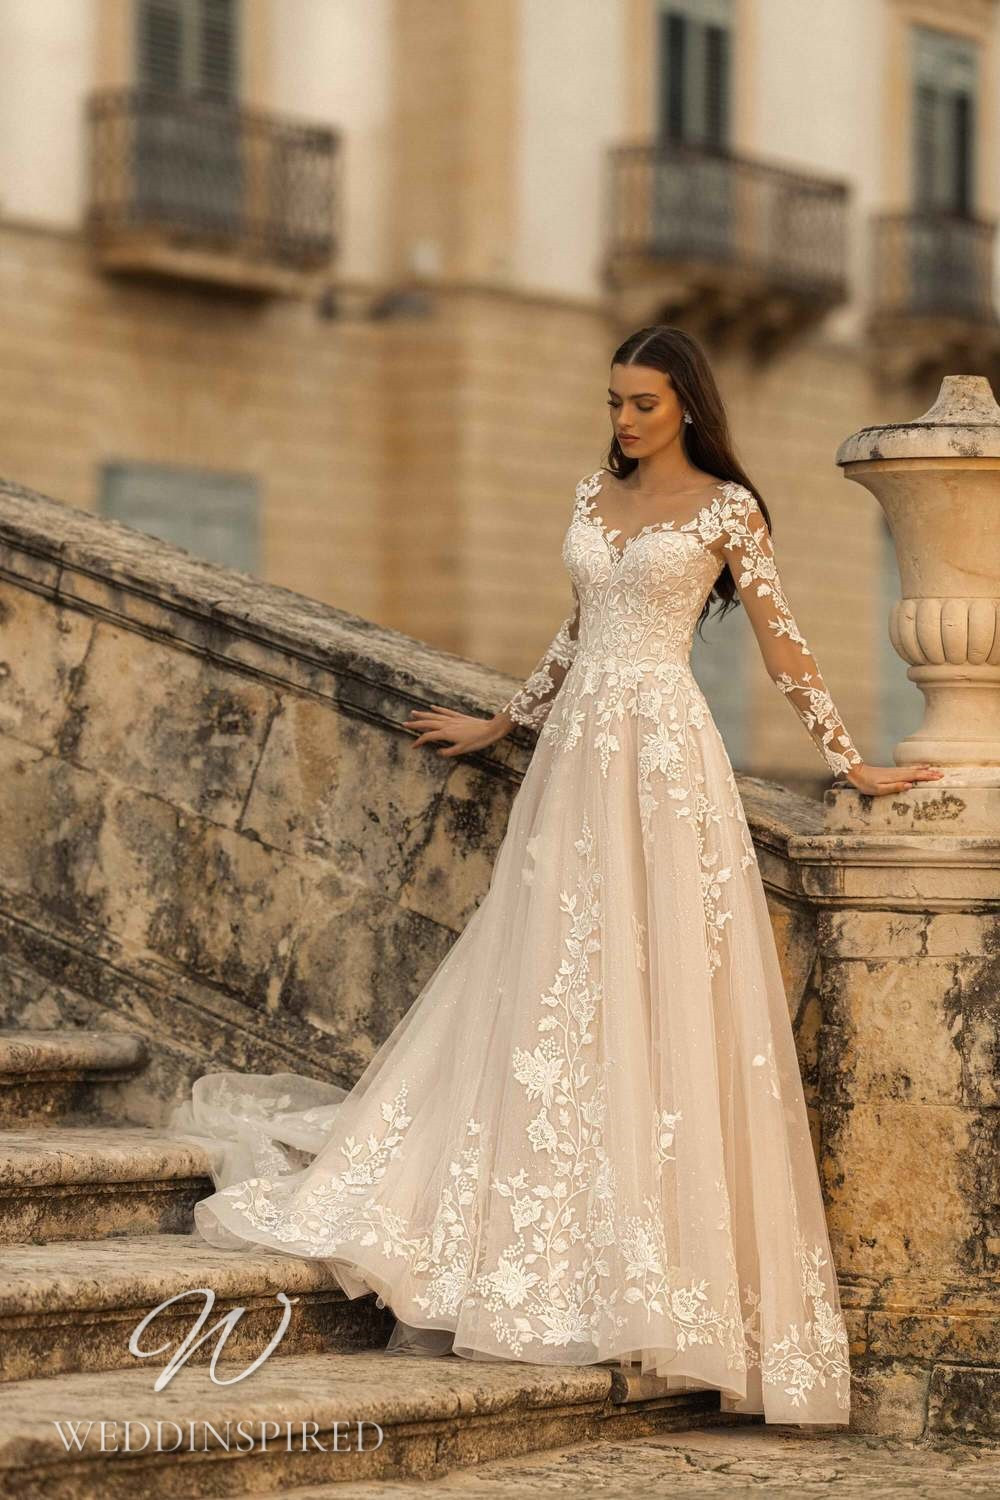 A Lussano 2021 blush lace and tulle A-line wedding dress with long sleeves